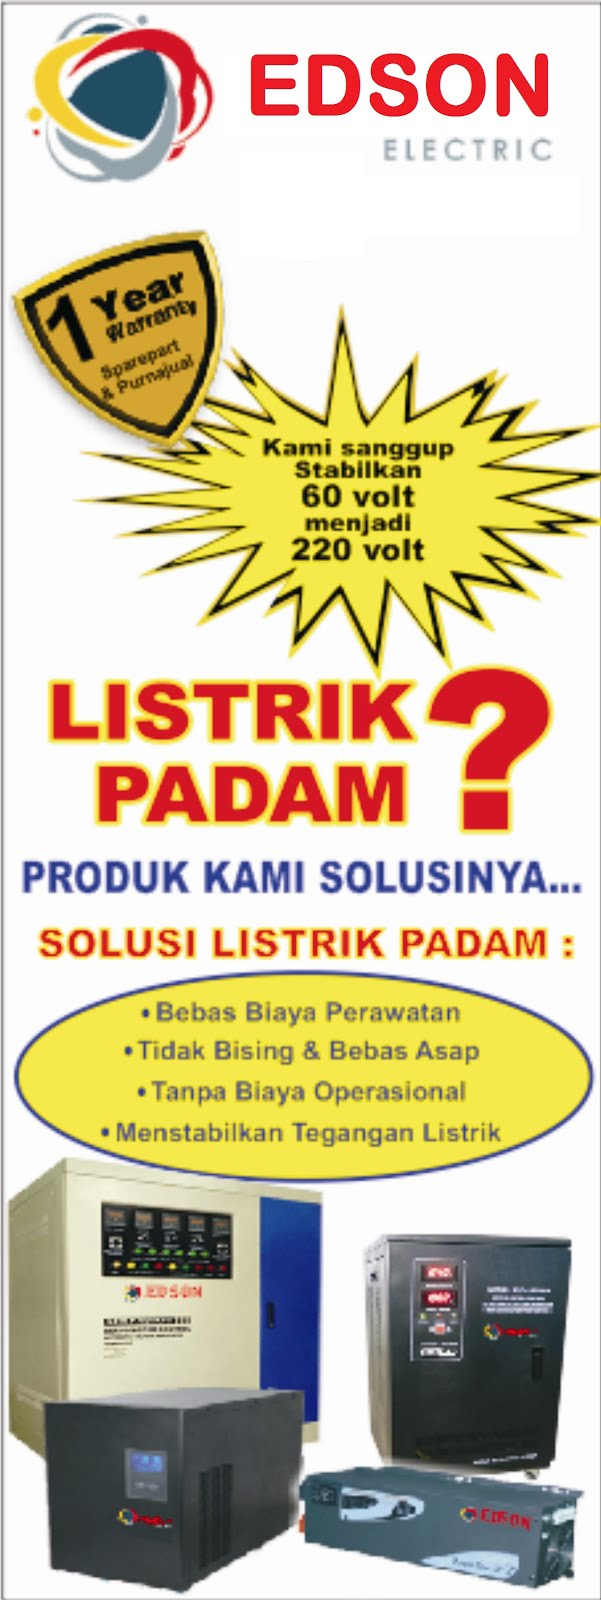 Produk EDSON Electric